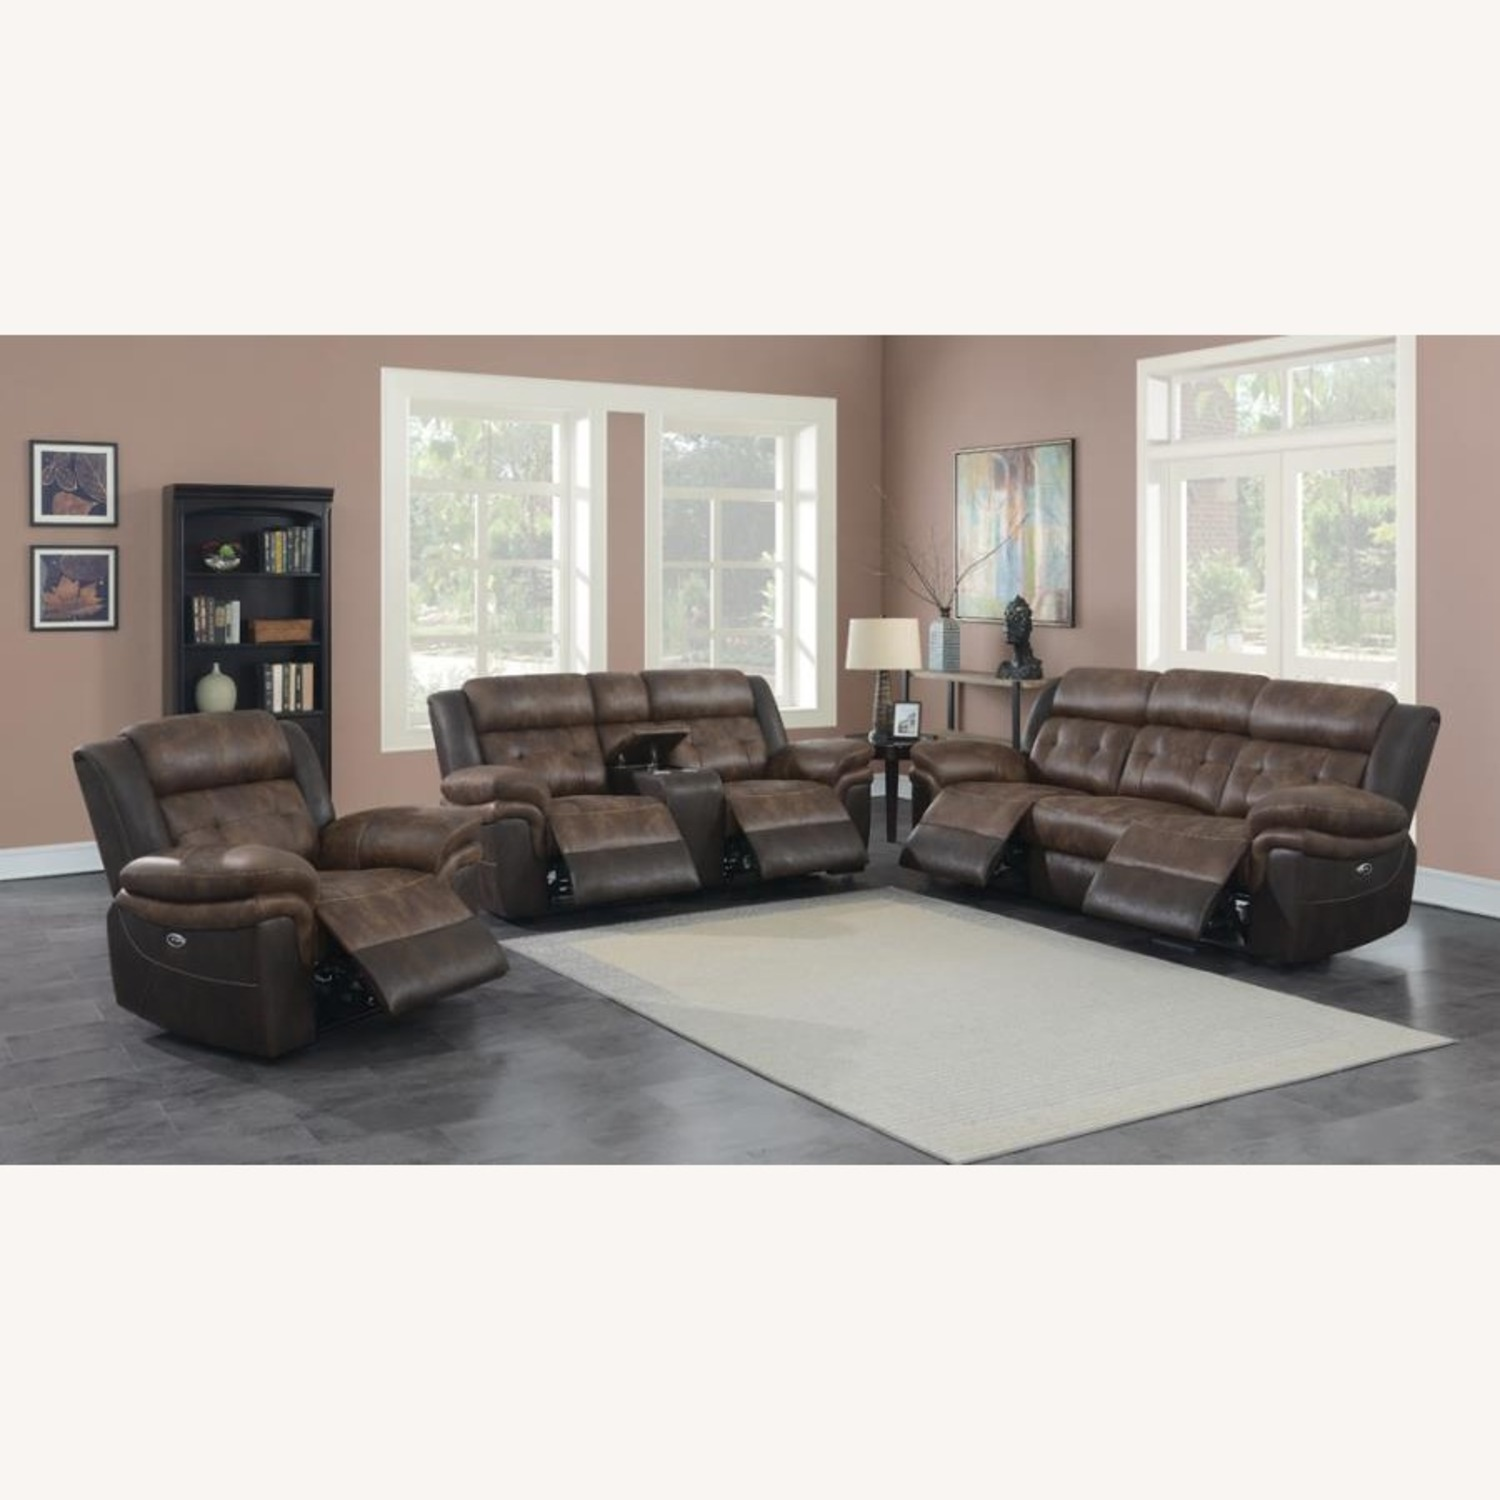 Power Recliner W/ Power Outlet In Chocolate Finish - image-10